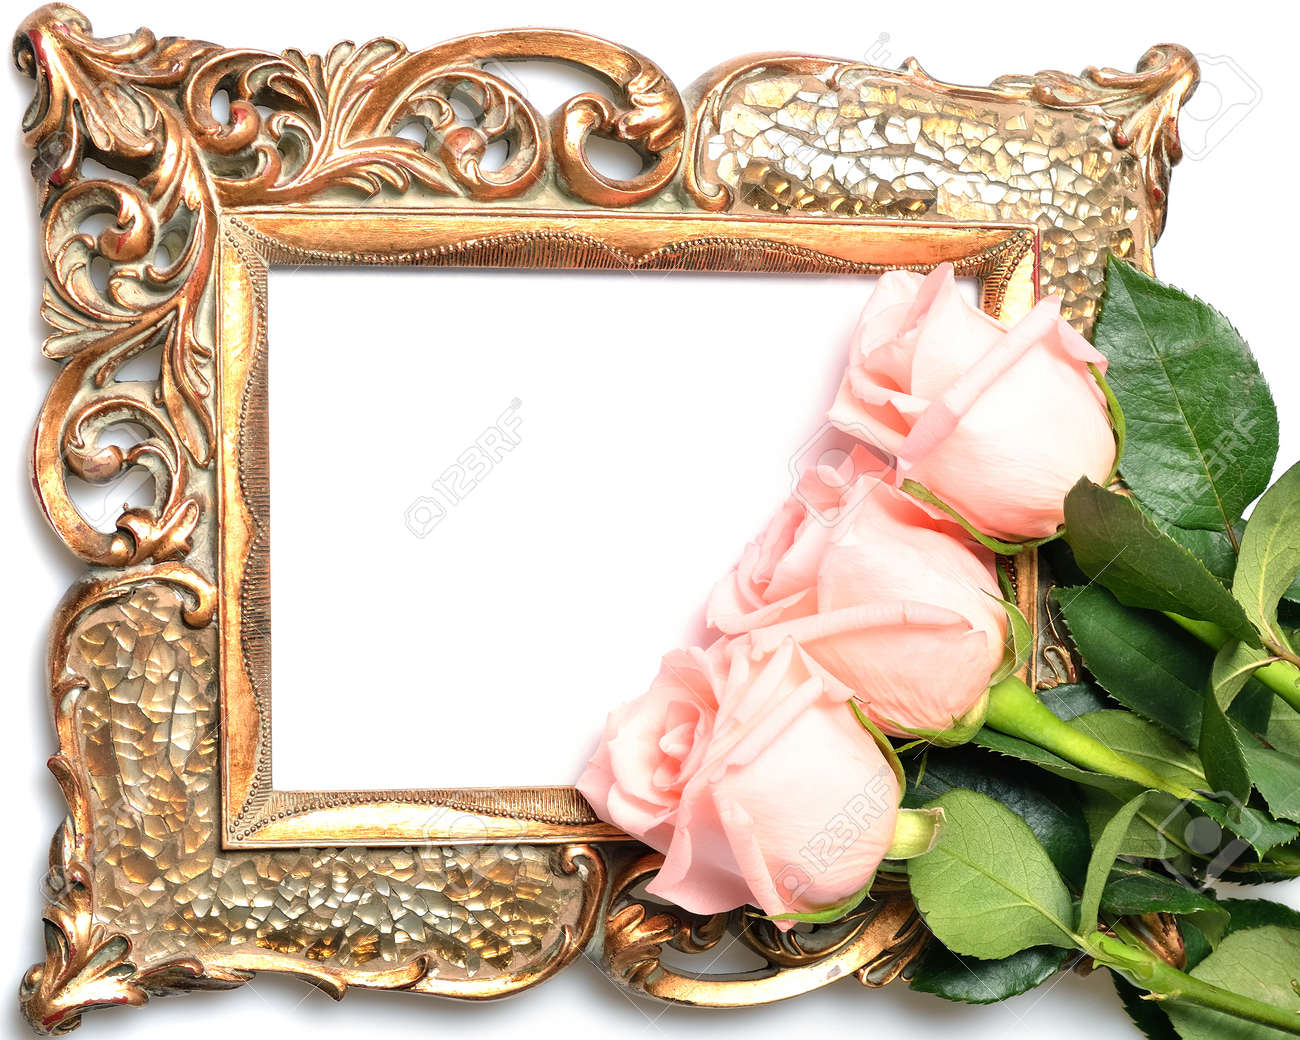 Old A Gilded Frame For The Congratulatory Inscription And Roses ...